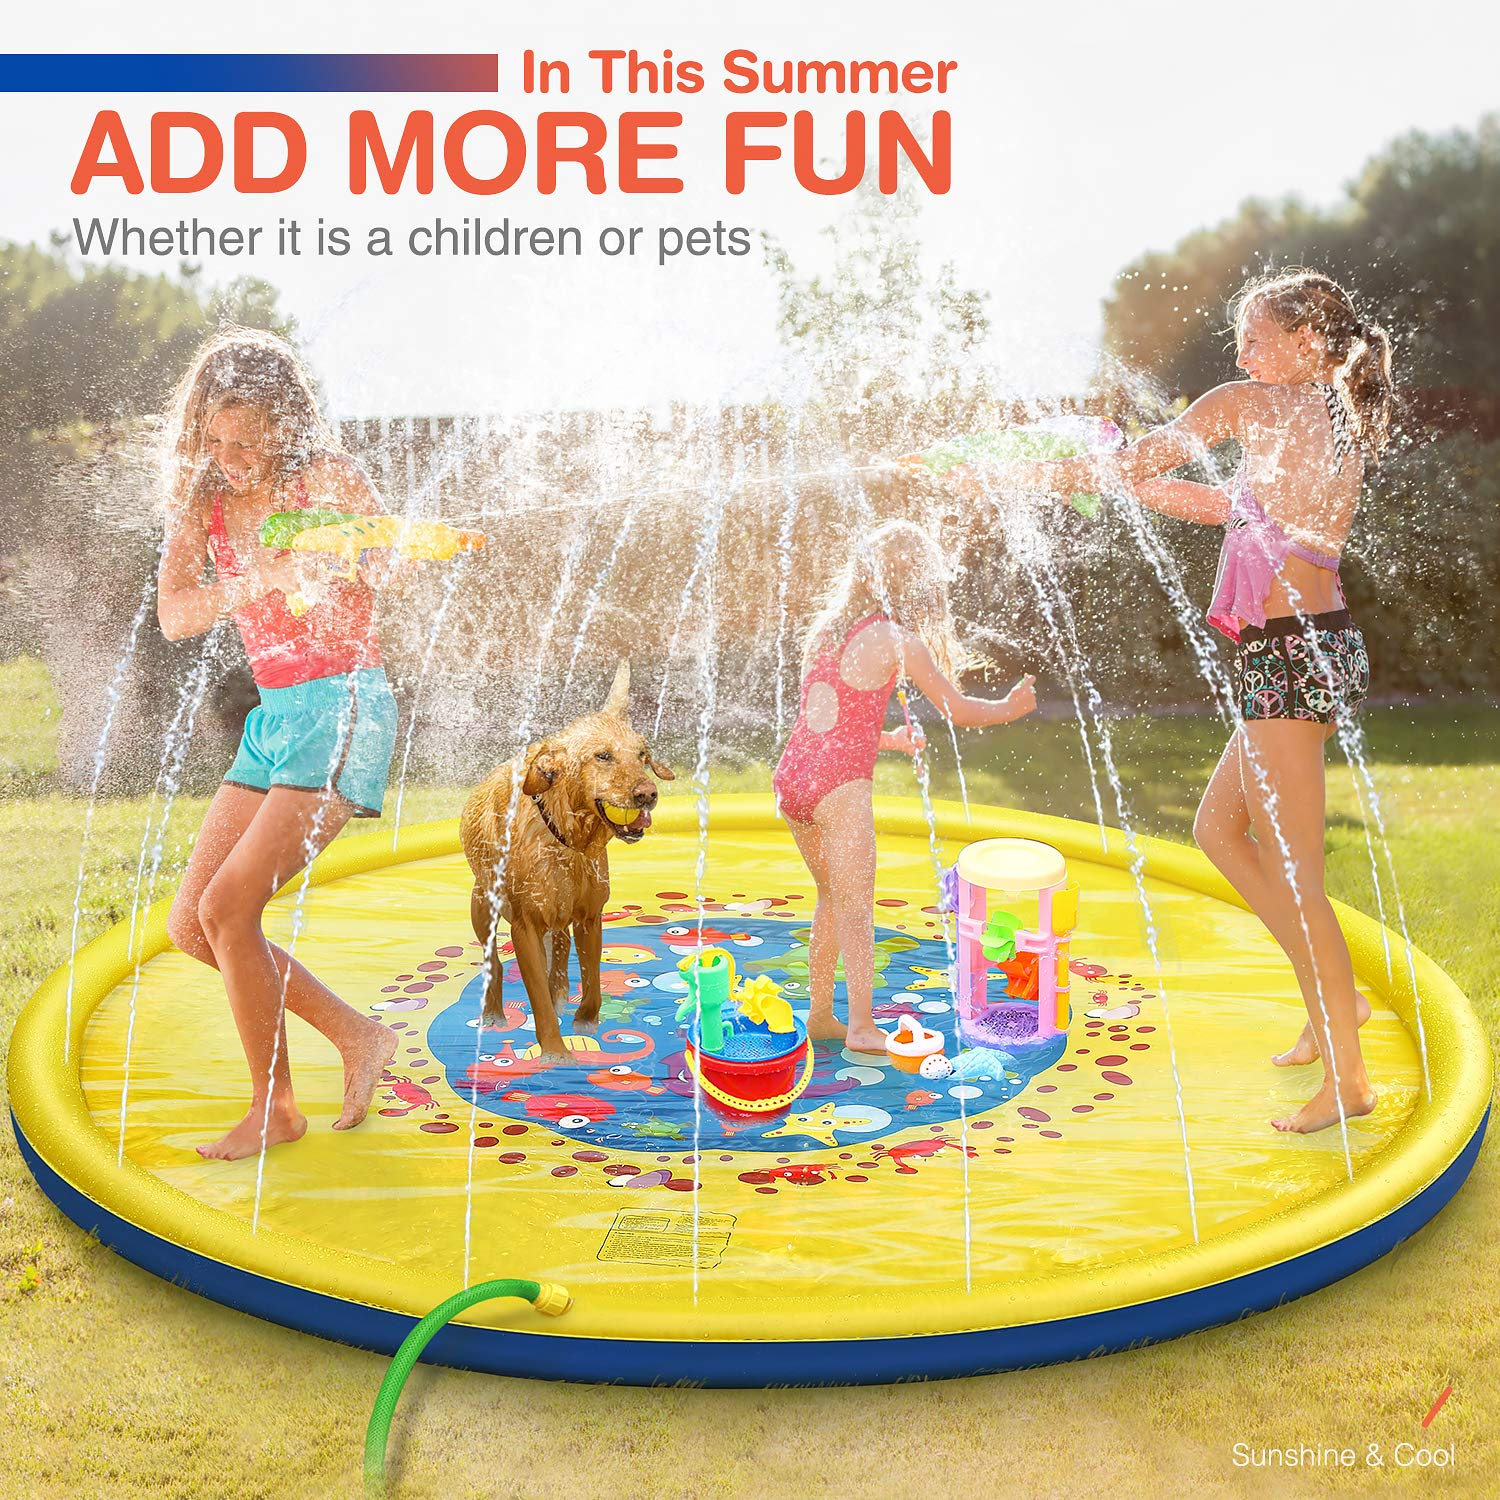 Splash Pad, 69 Inches No More Burst Sprinkle and Splash Play Mat Sprinkler for Kids Boys Girls Fun Splash Play Mat Summer Outdoor Sprinkler Pad Party Water Toys Extra Large Children's Sprinkler Pool by tomser (Image #4)